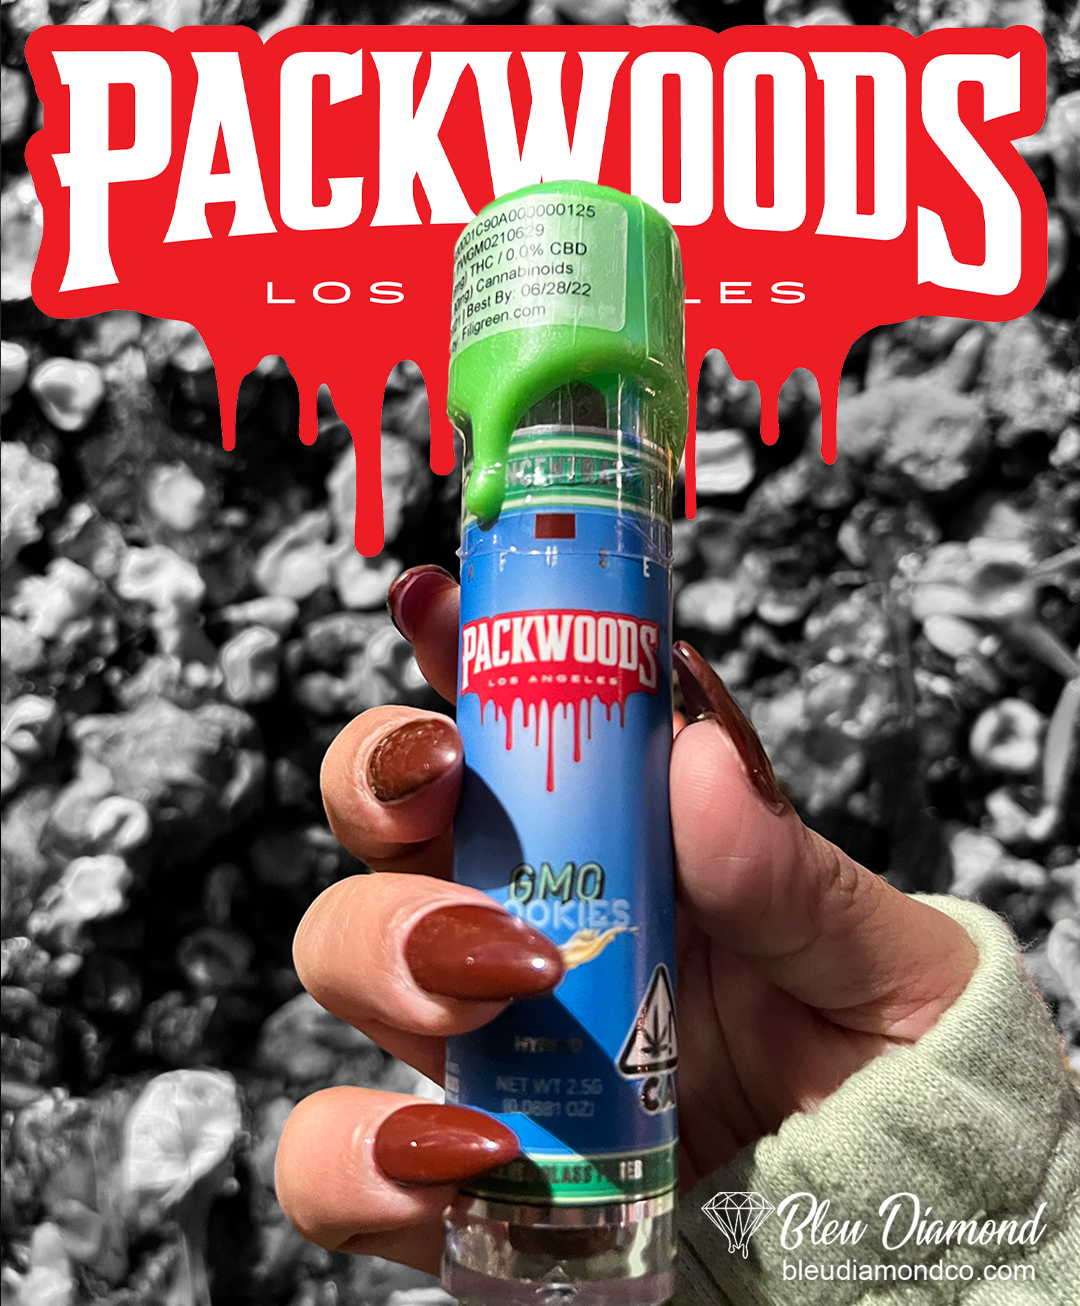 Packwoods Los Angeles Central Coast Cannabis